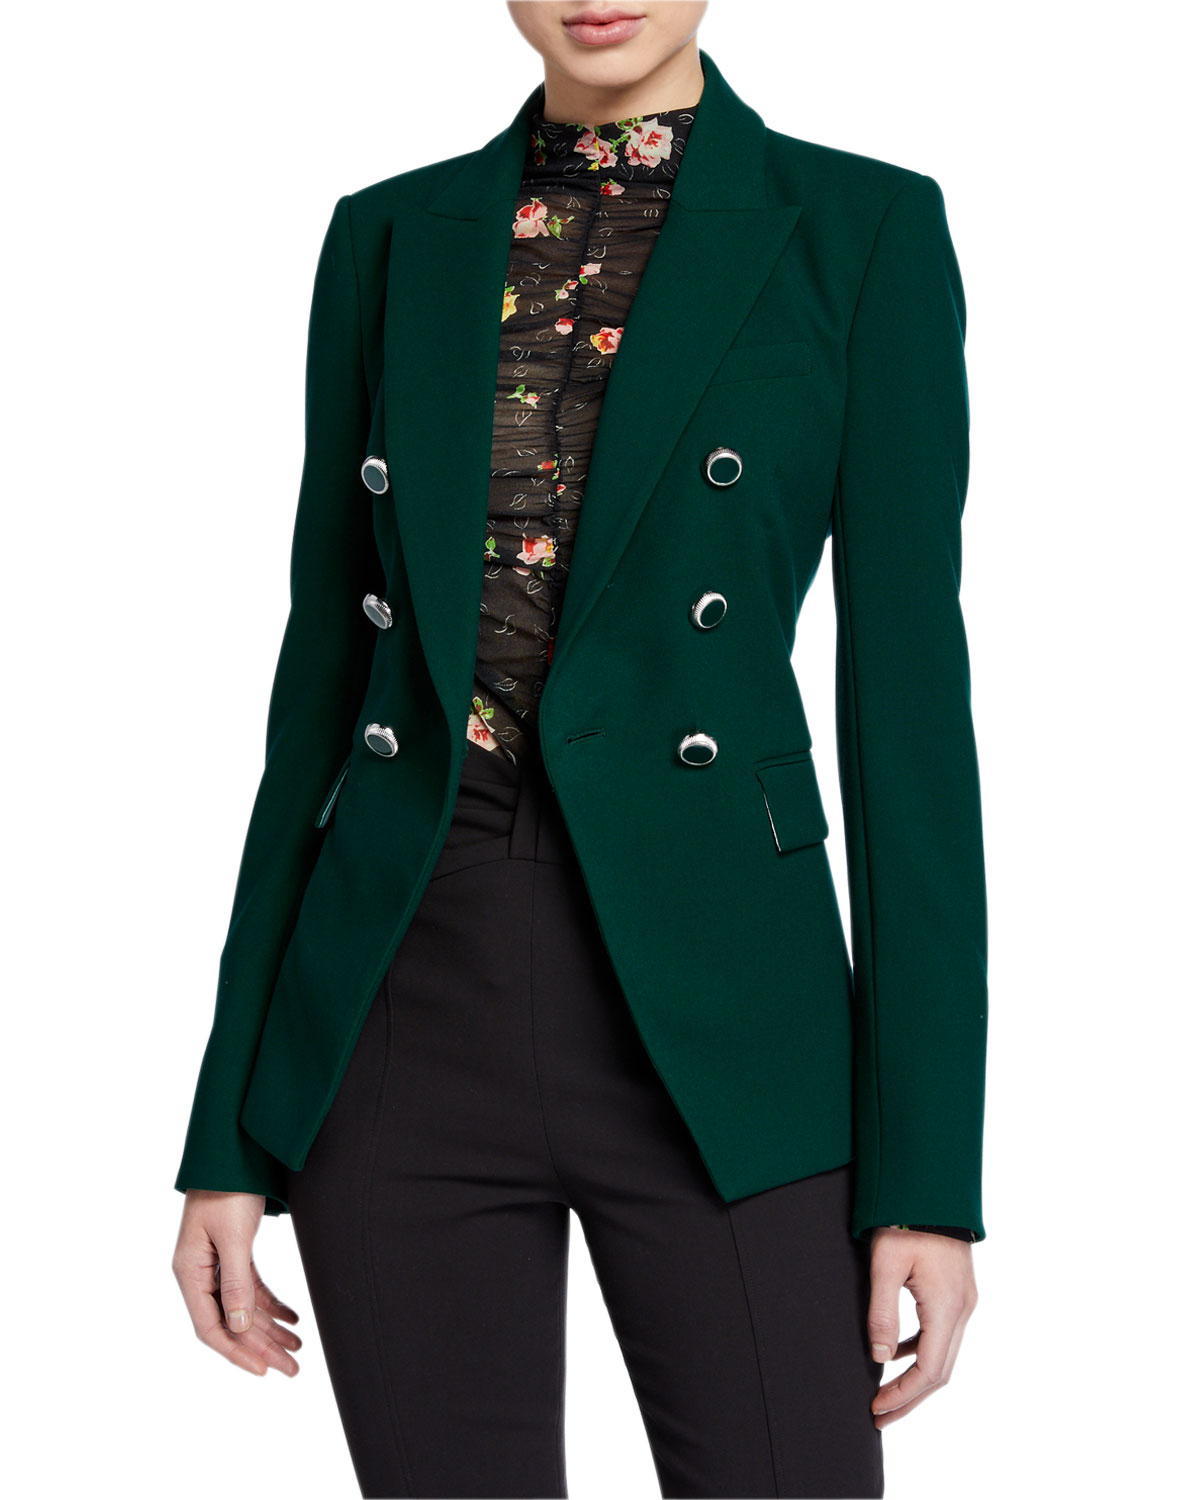 Veronica Beard Jackets MILLER DICKEY JACKET WITH ENAMEL BUTTONS